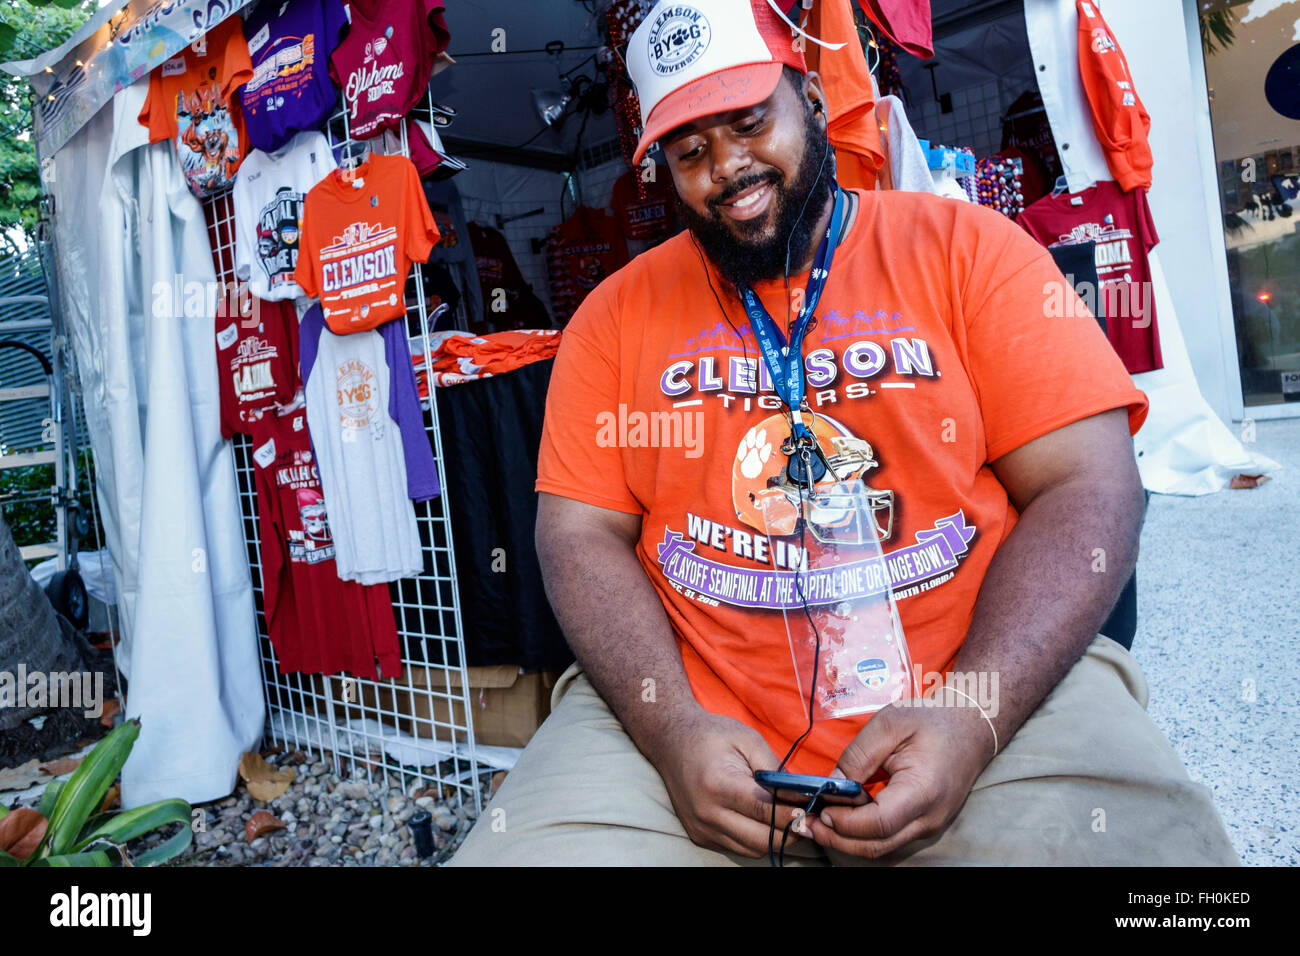 Miami Beach Florida Ocean Drive New Year's Eve Black man texting smartphone sidewalk vendor sale display souvenirs - Stock Image